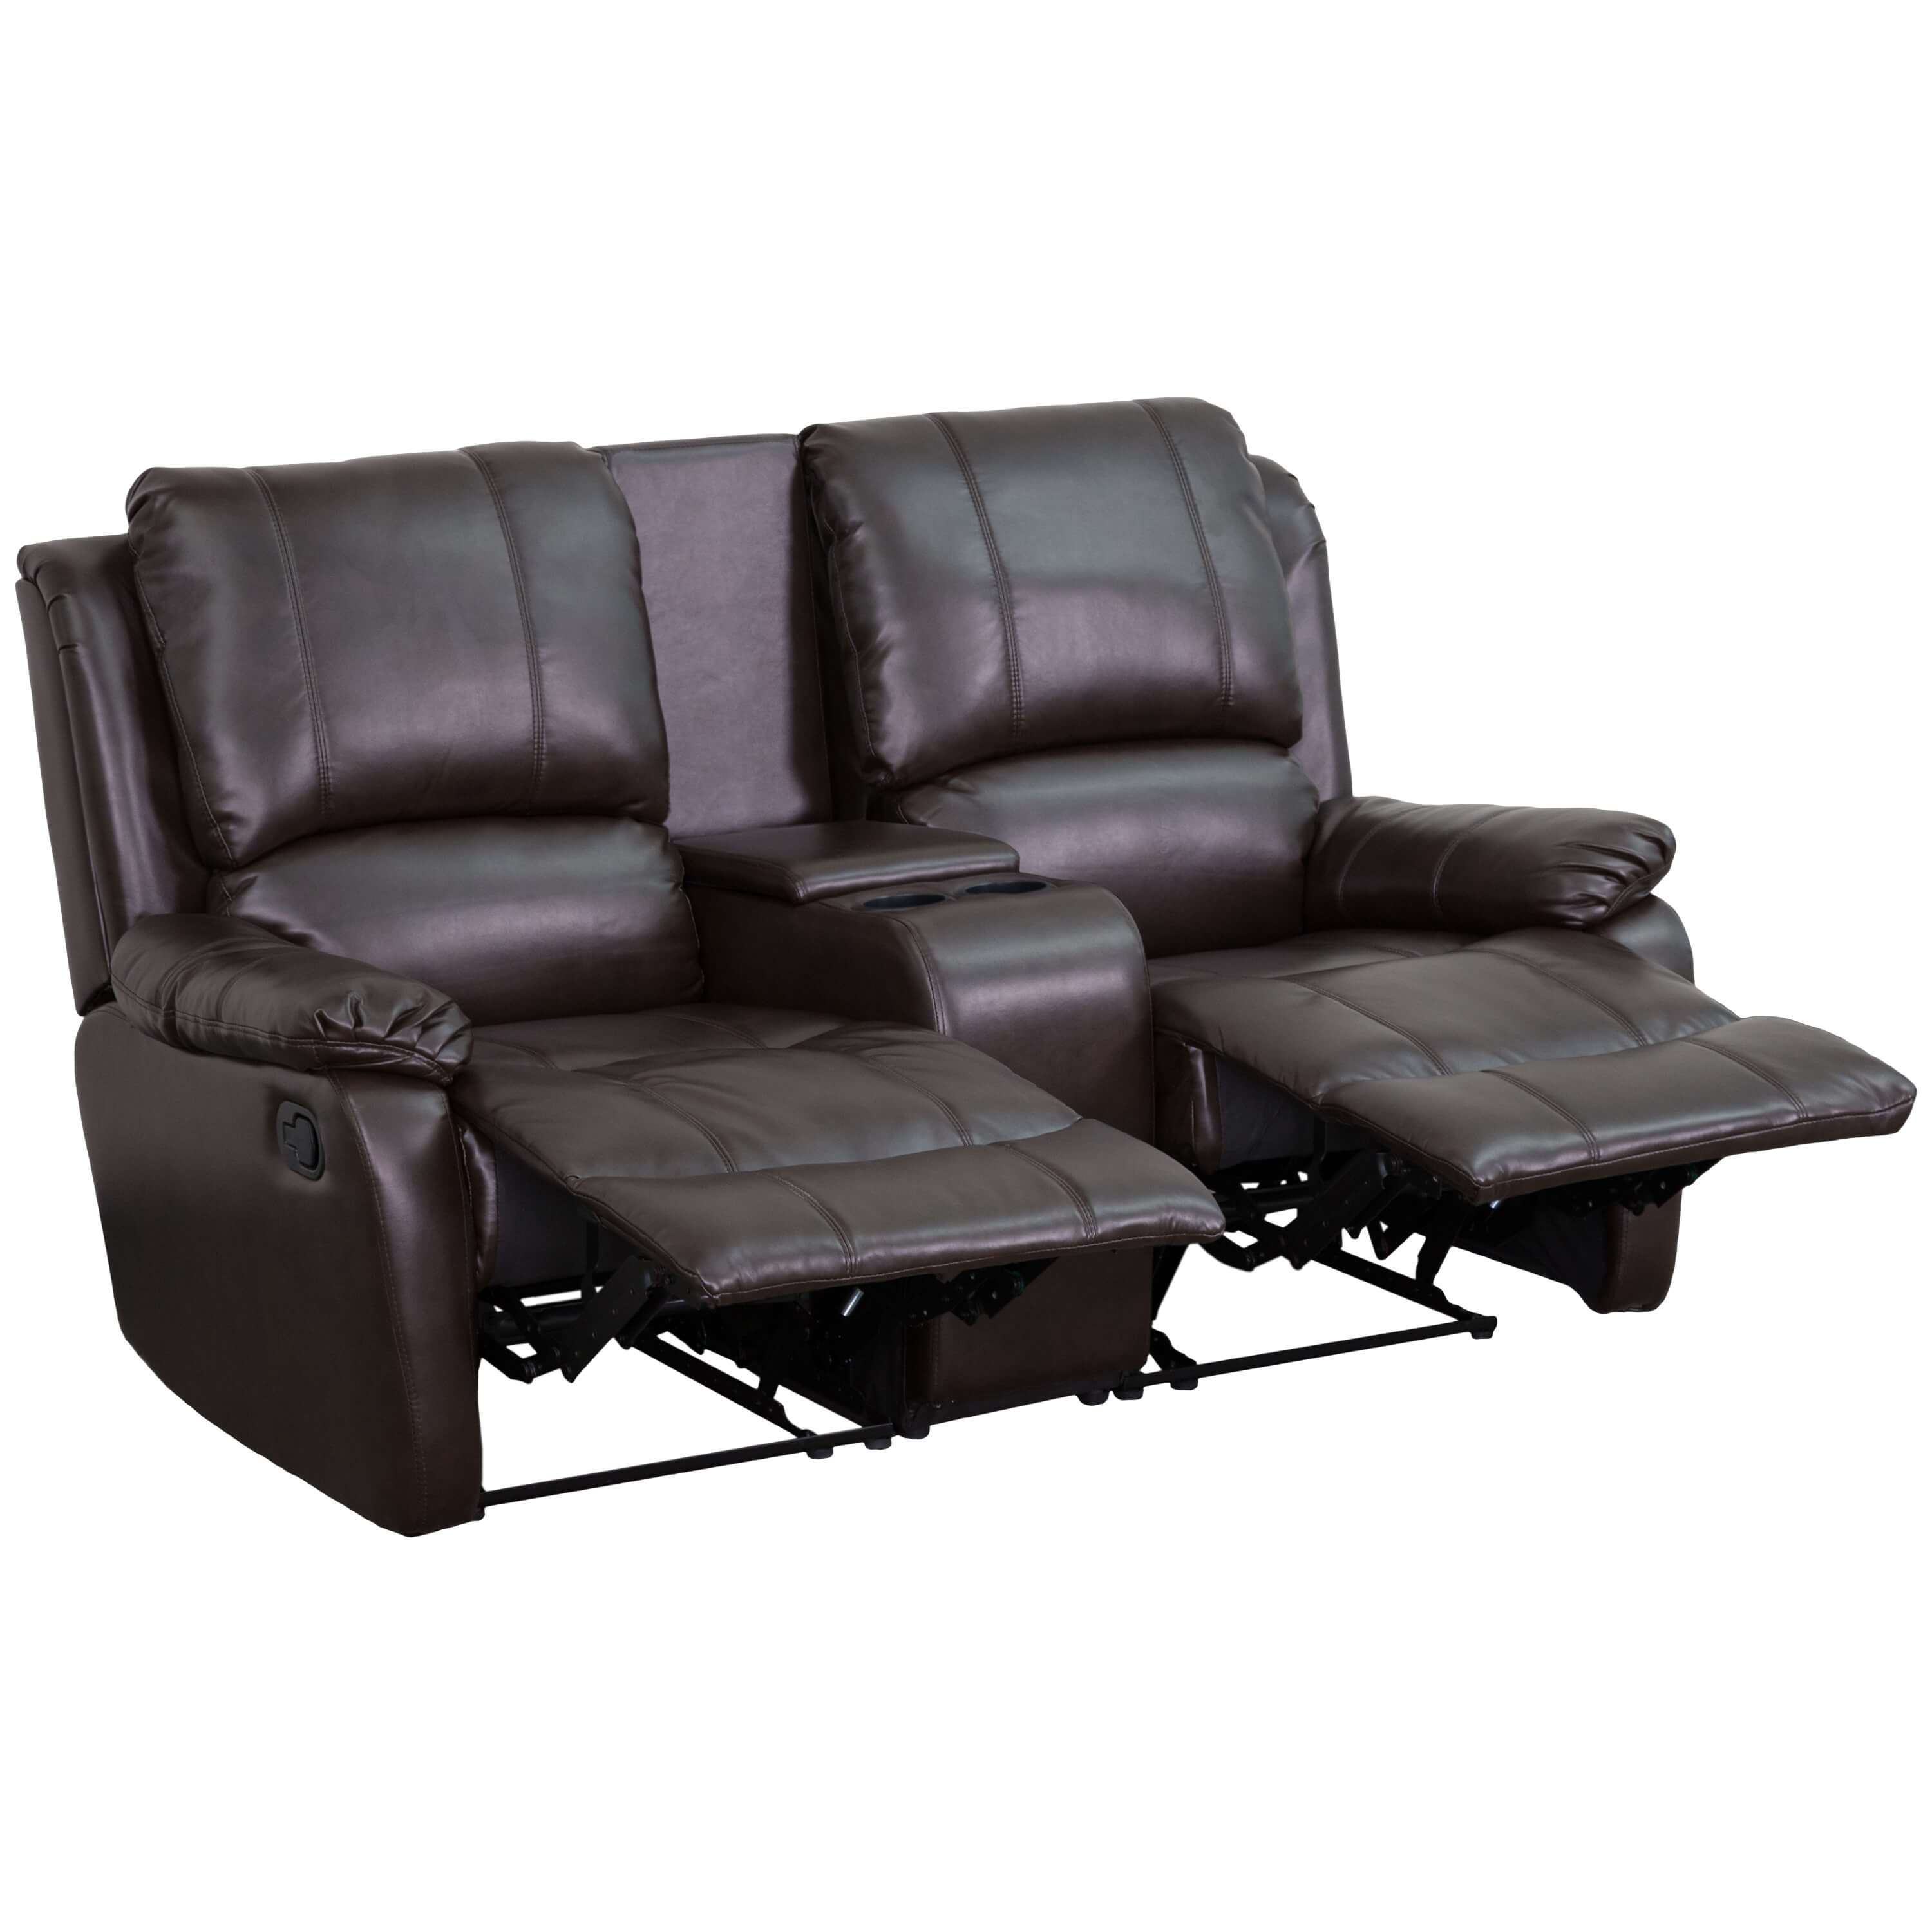 theater chairs with cup holders modern brown leather desk chair bergman recliner holder